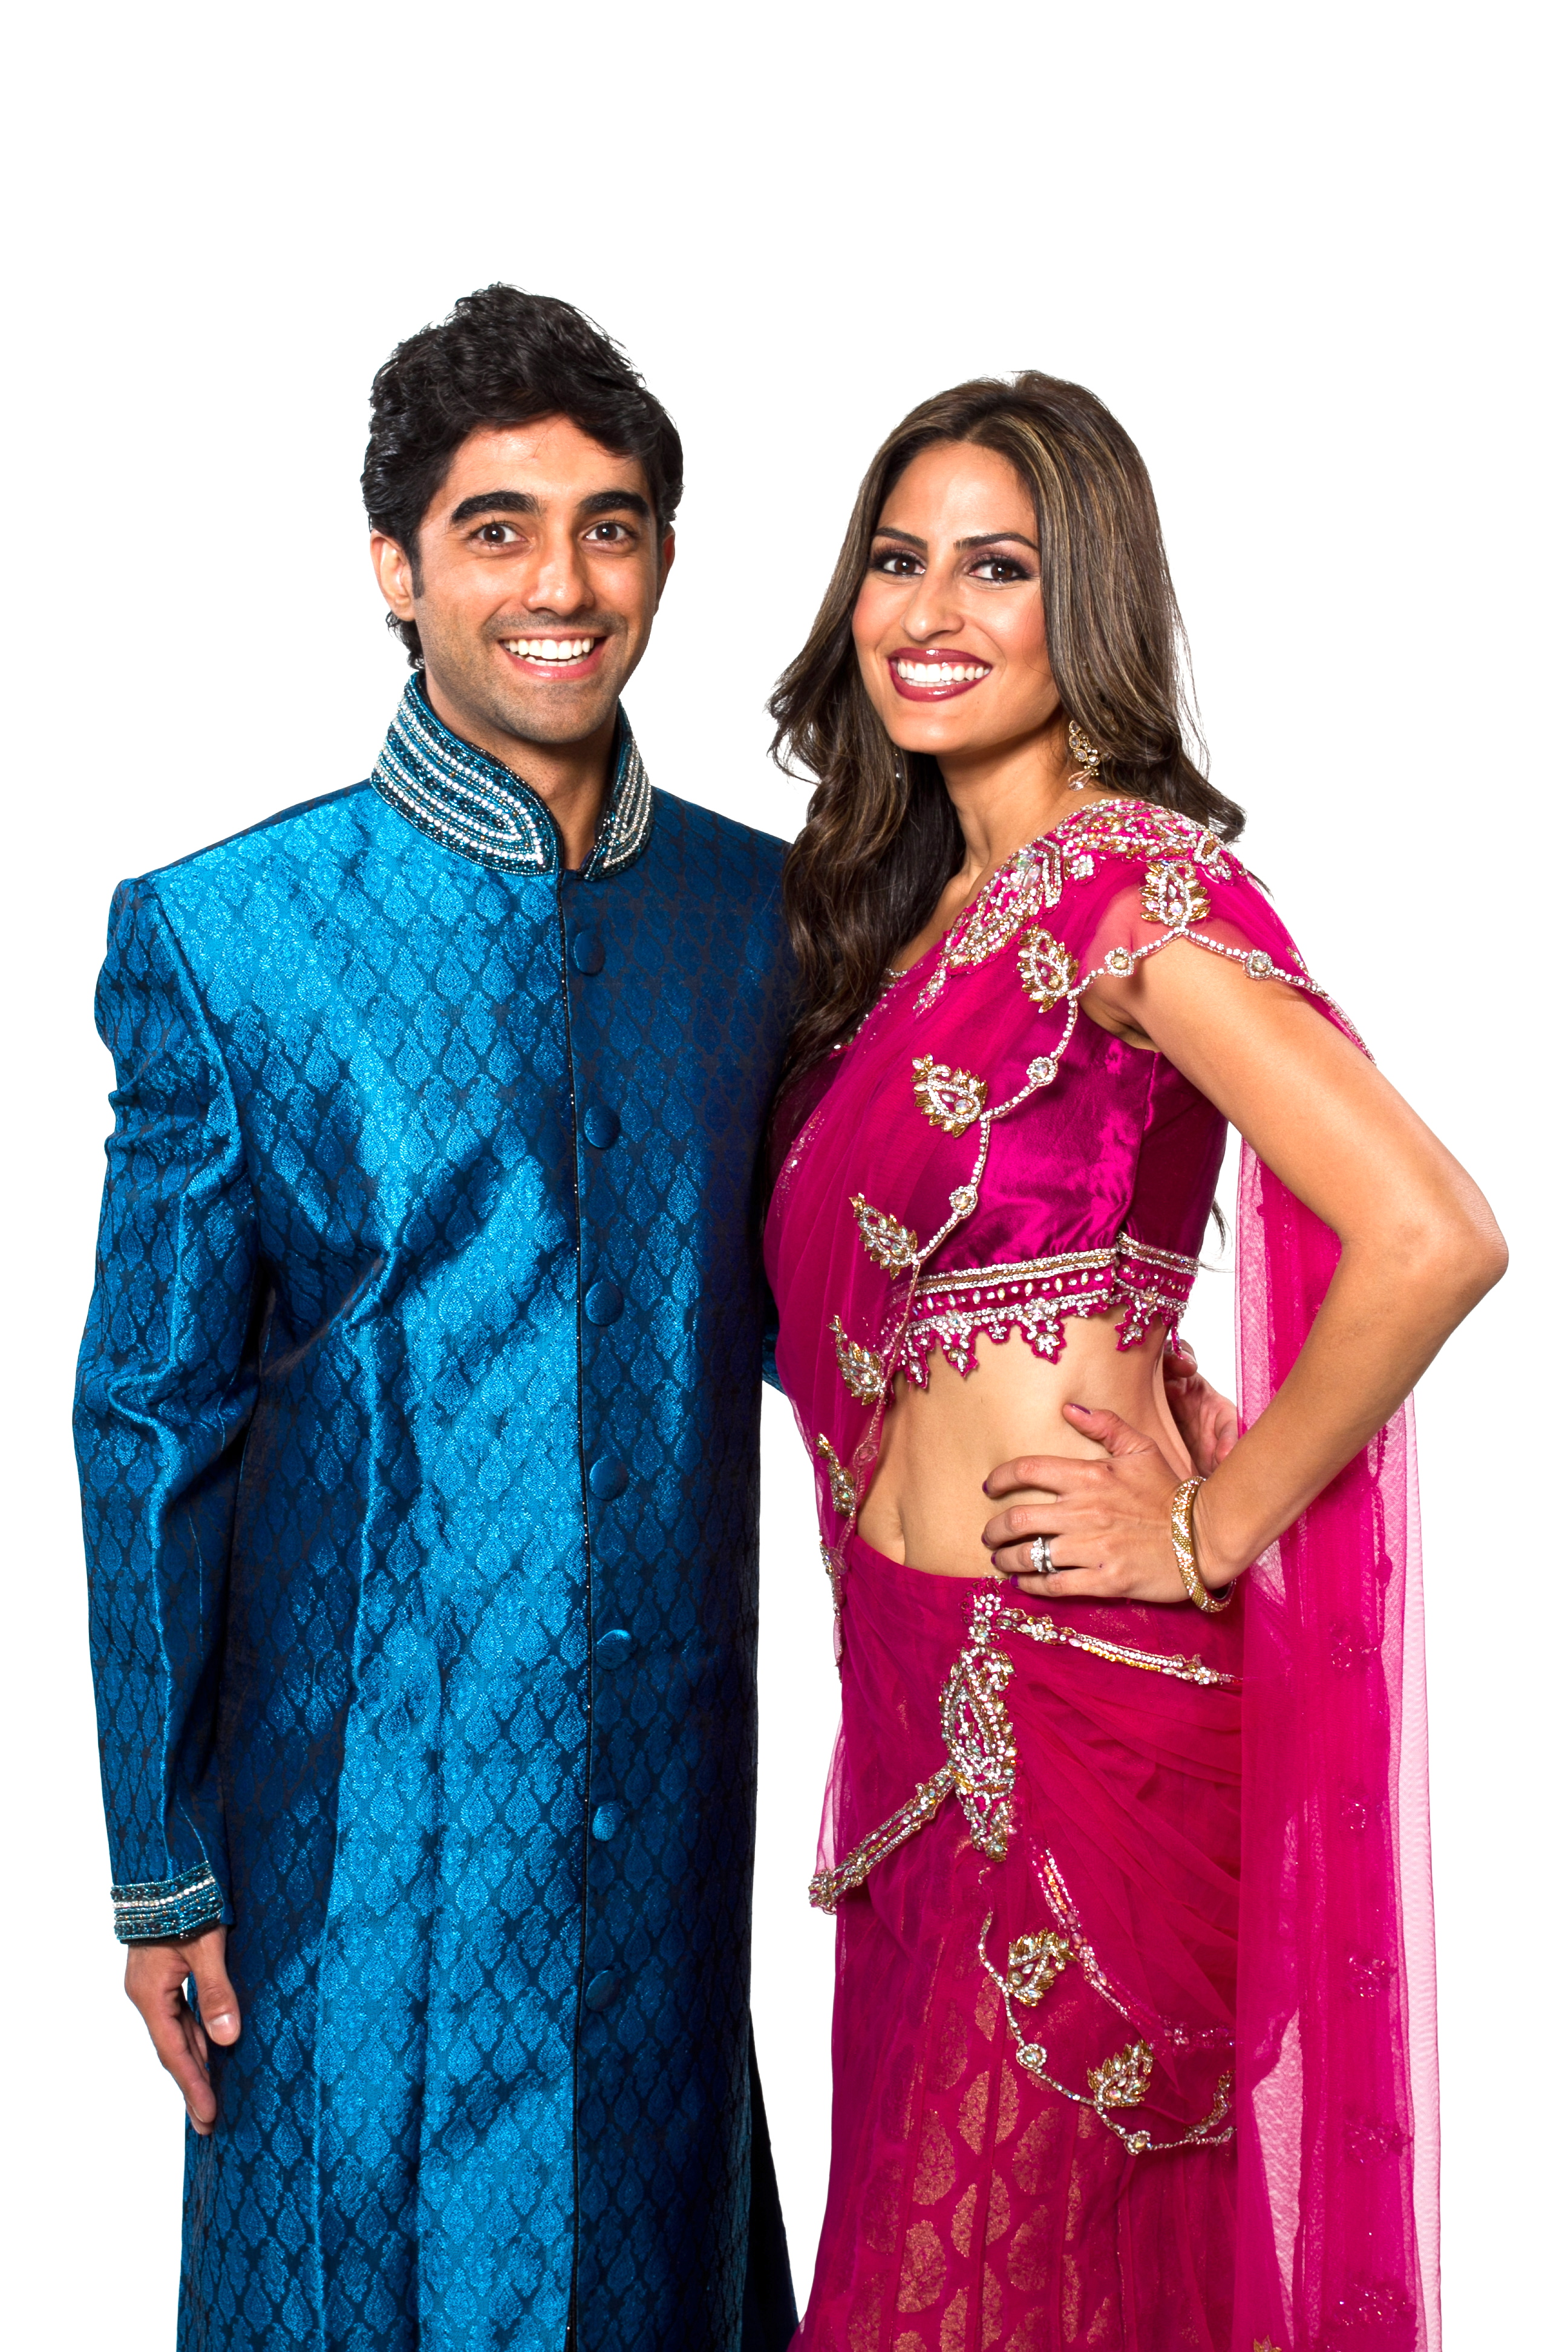 Dressing The Indian Wedding Party Tips From Borrow It Bindaas